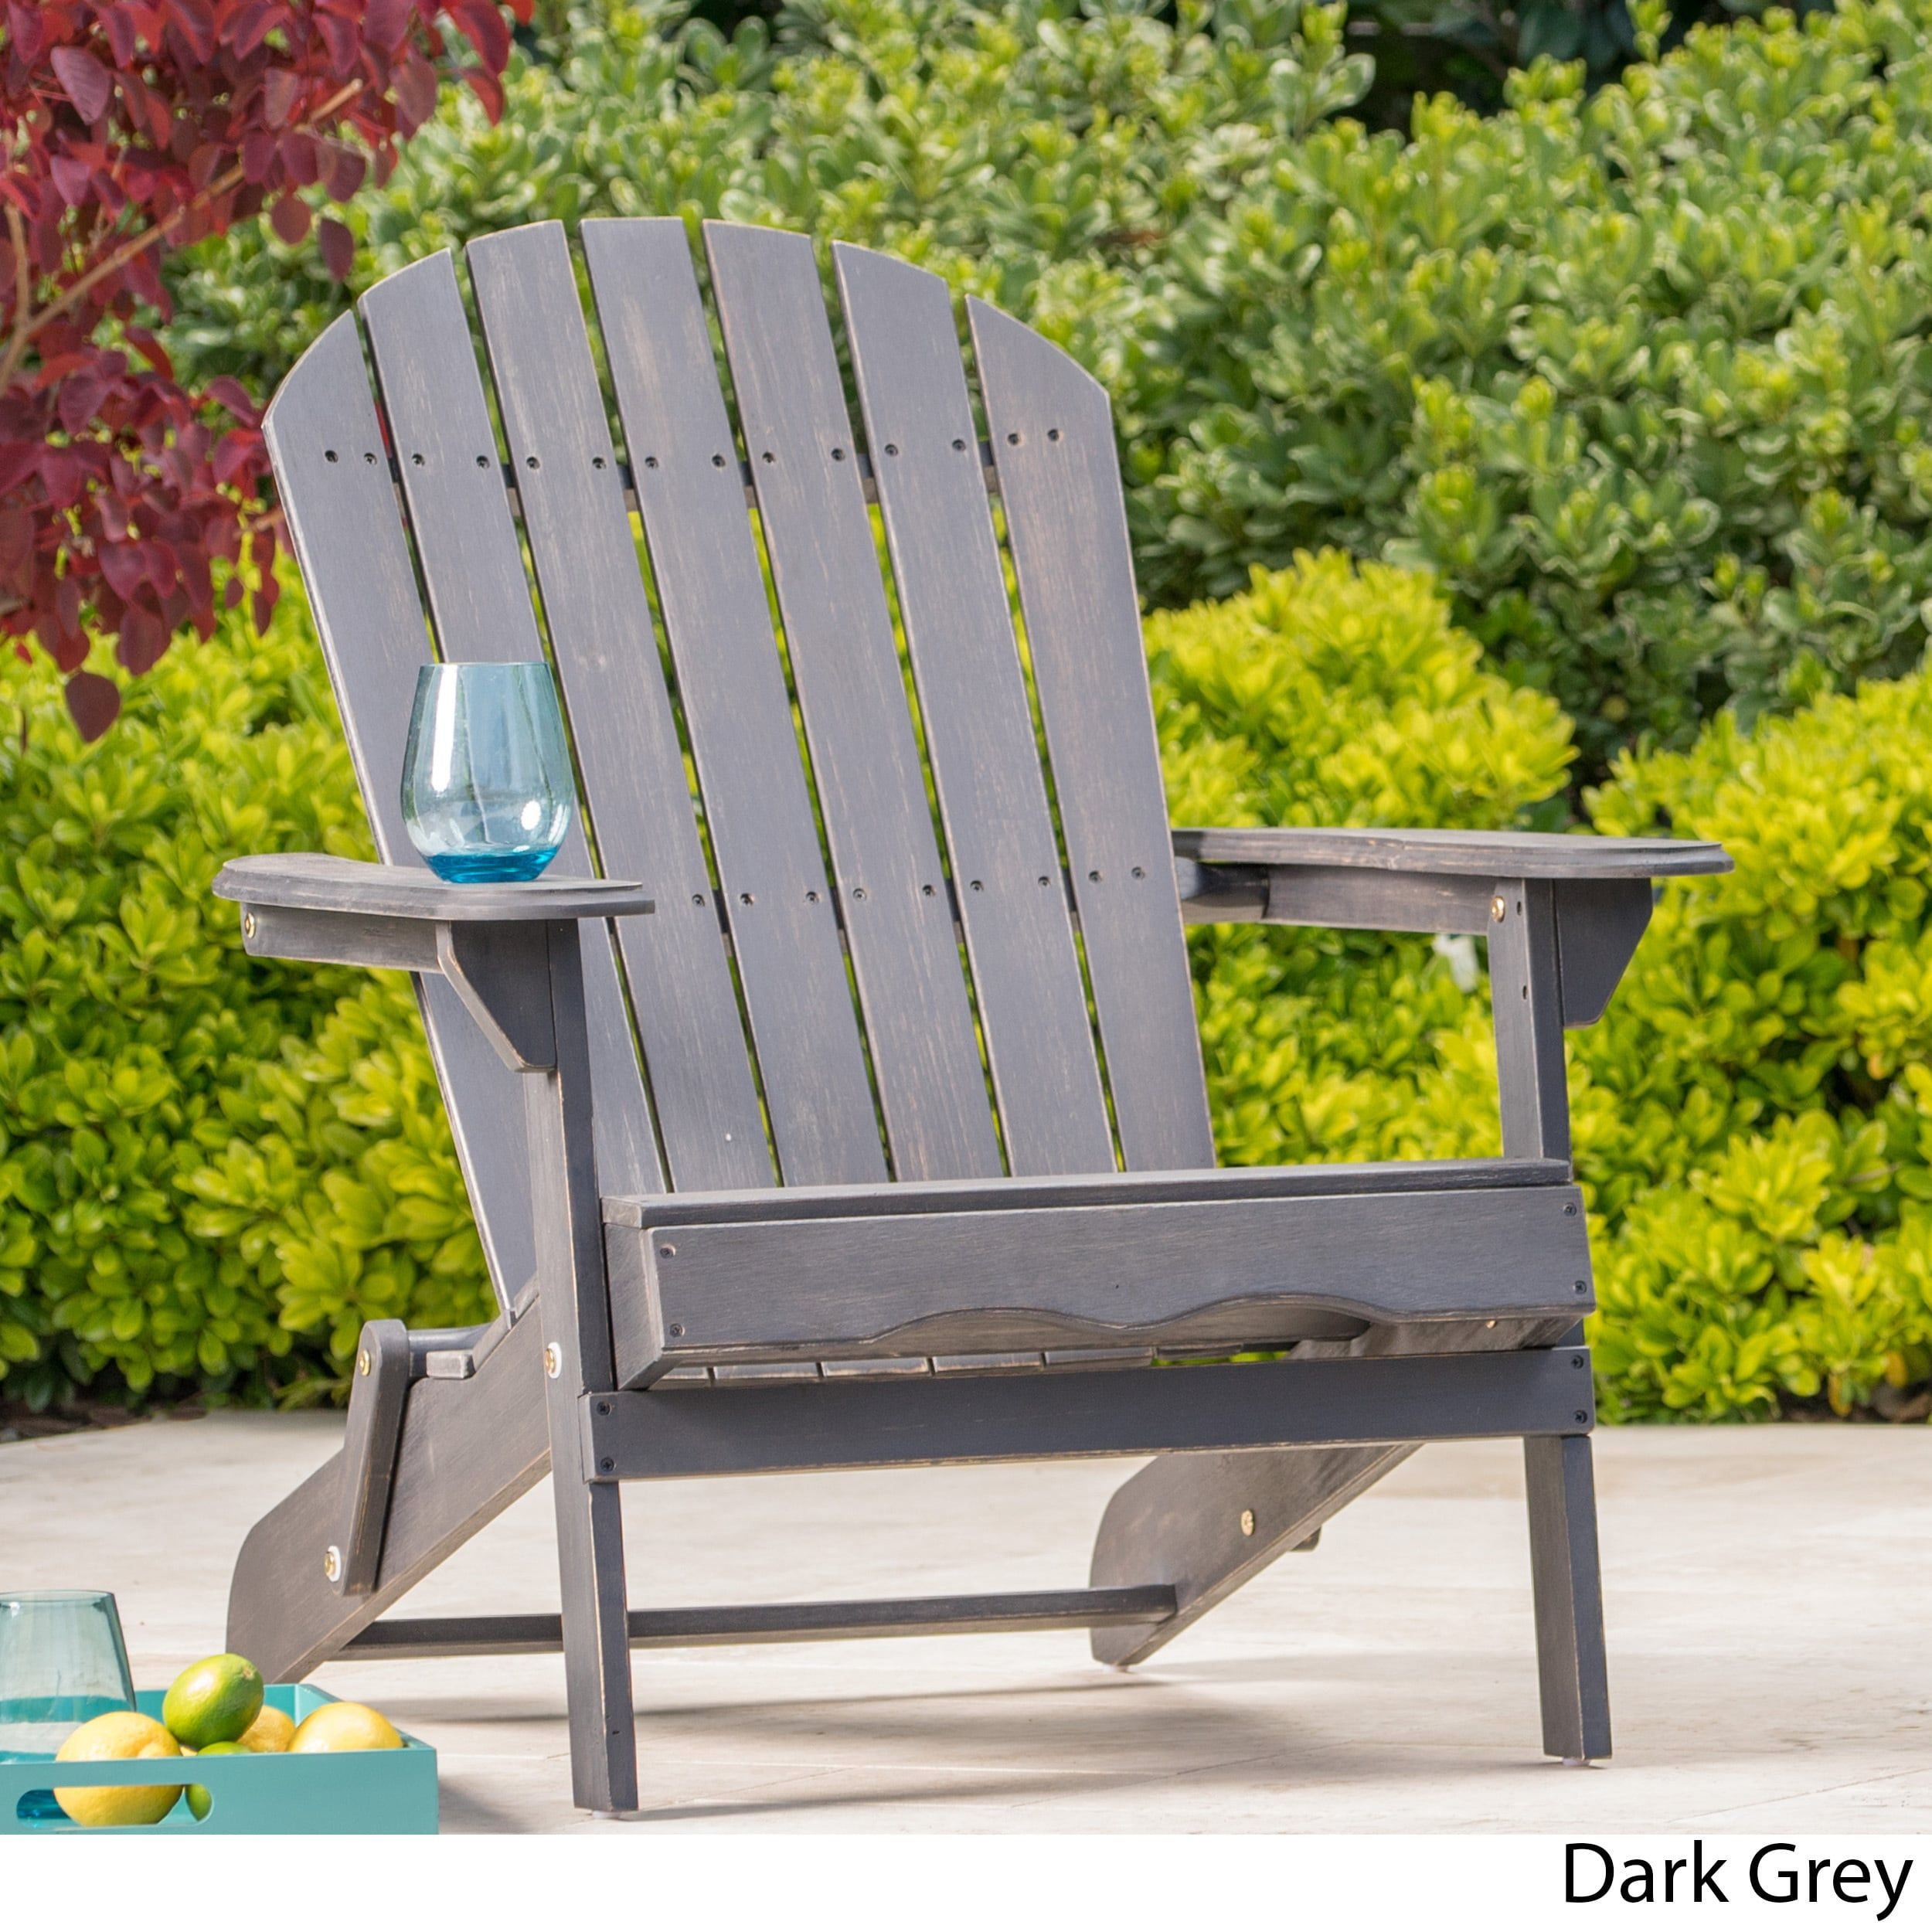 Hanlee Outdoor Folding Wood Adirondack Chair By Christopher Knight Home  (Dark Grey), Size